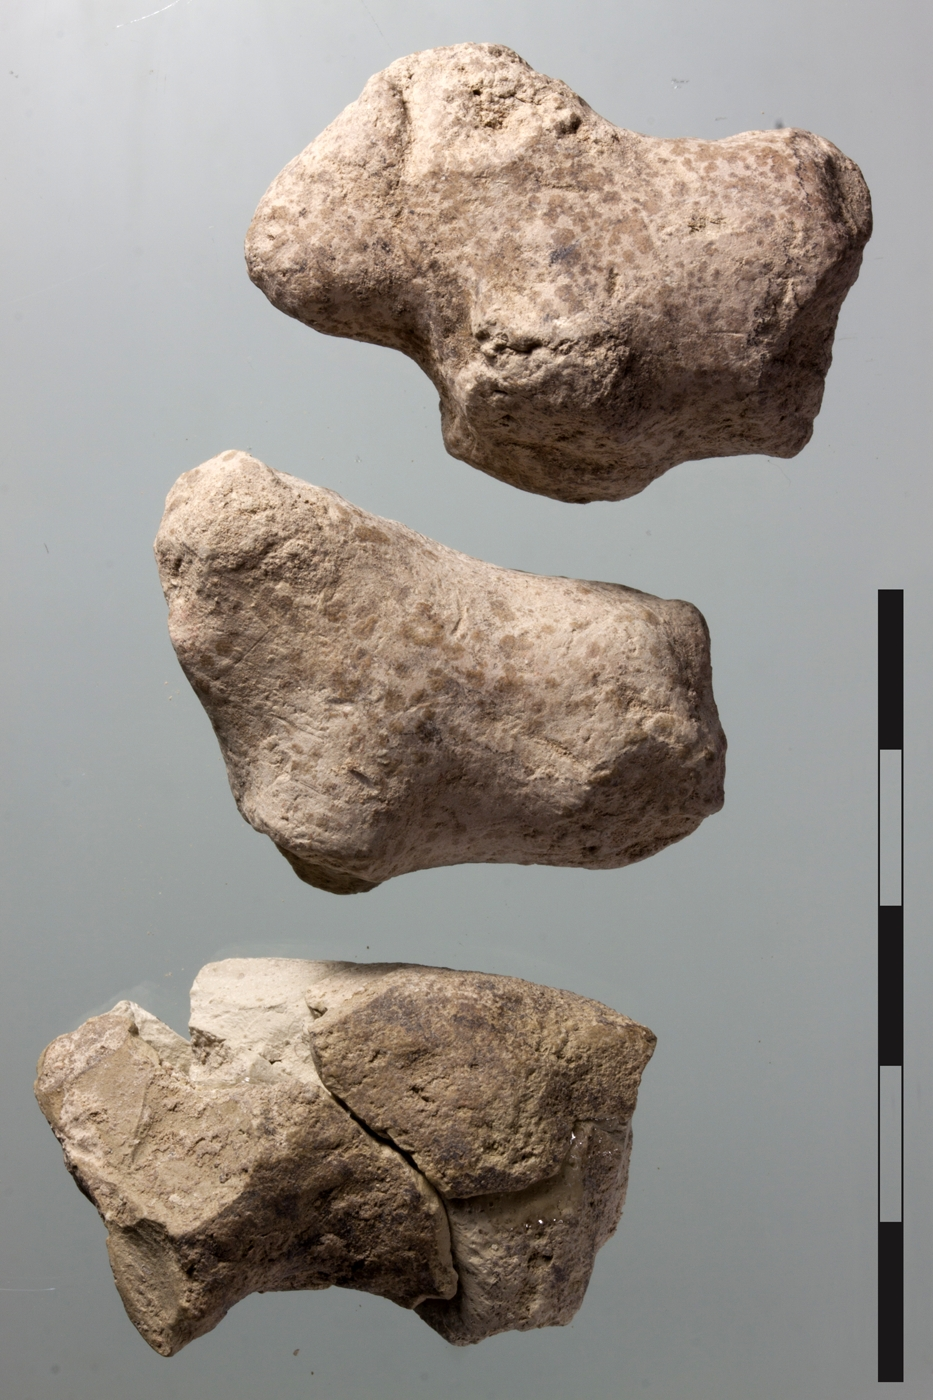 Clay zoomorphic figurines in the form of cattle and goat (from the top: cattle, cattle, goat)